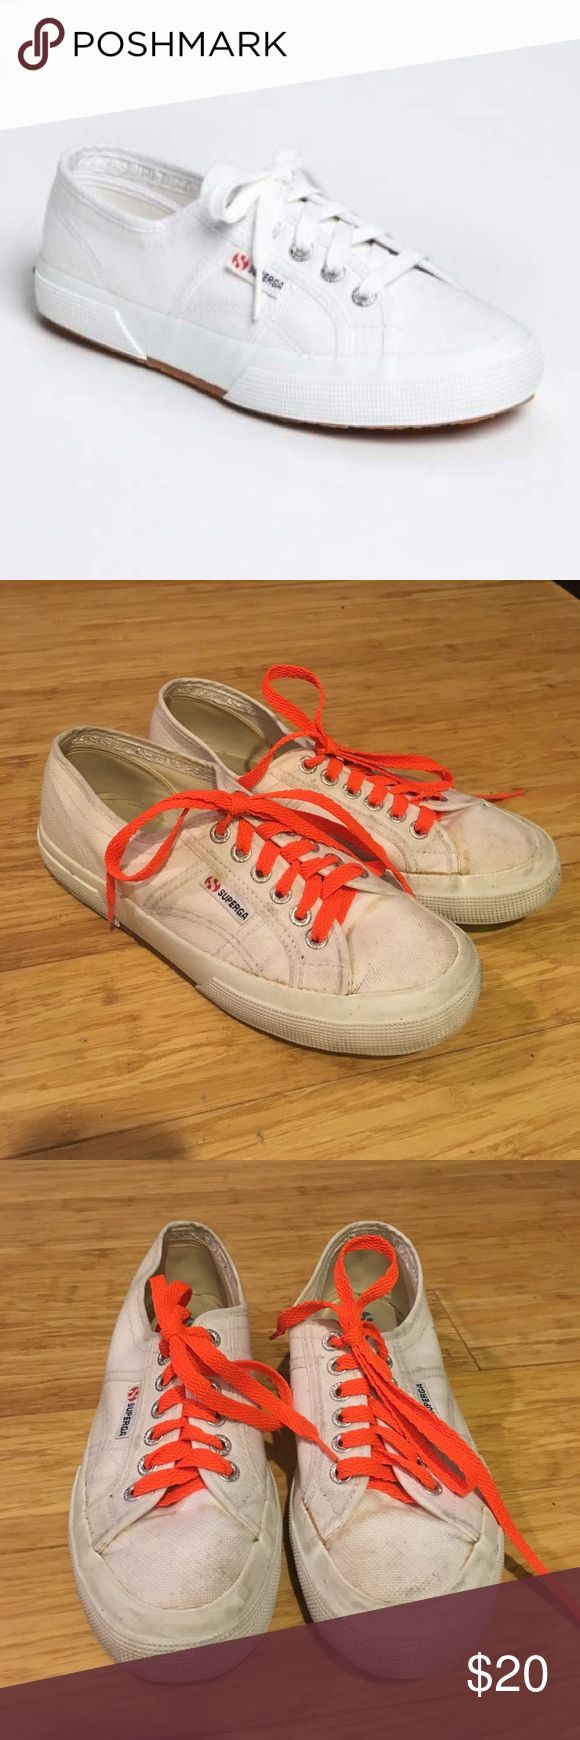 Superga White Sneakers with Orange Laces Well-loved Superga white sneakers with fun, orange laces. Size 39. Superga Shoes Sneakers